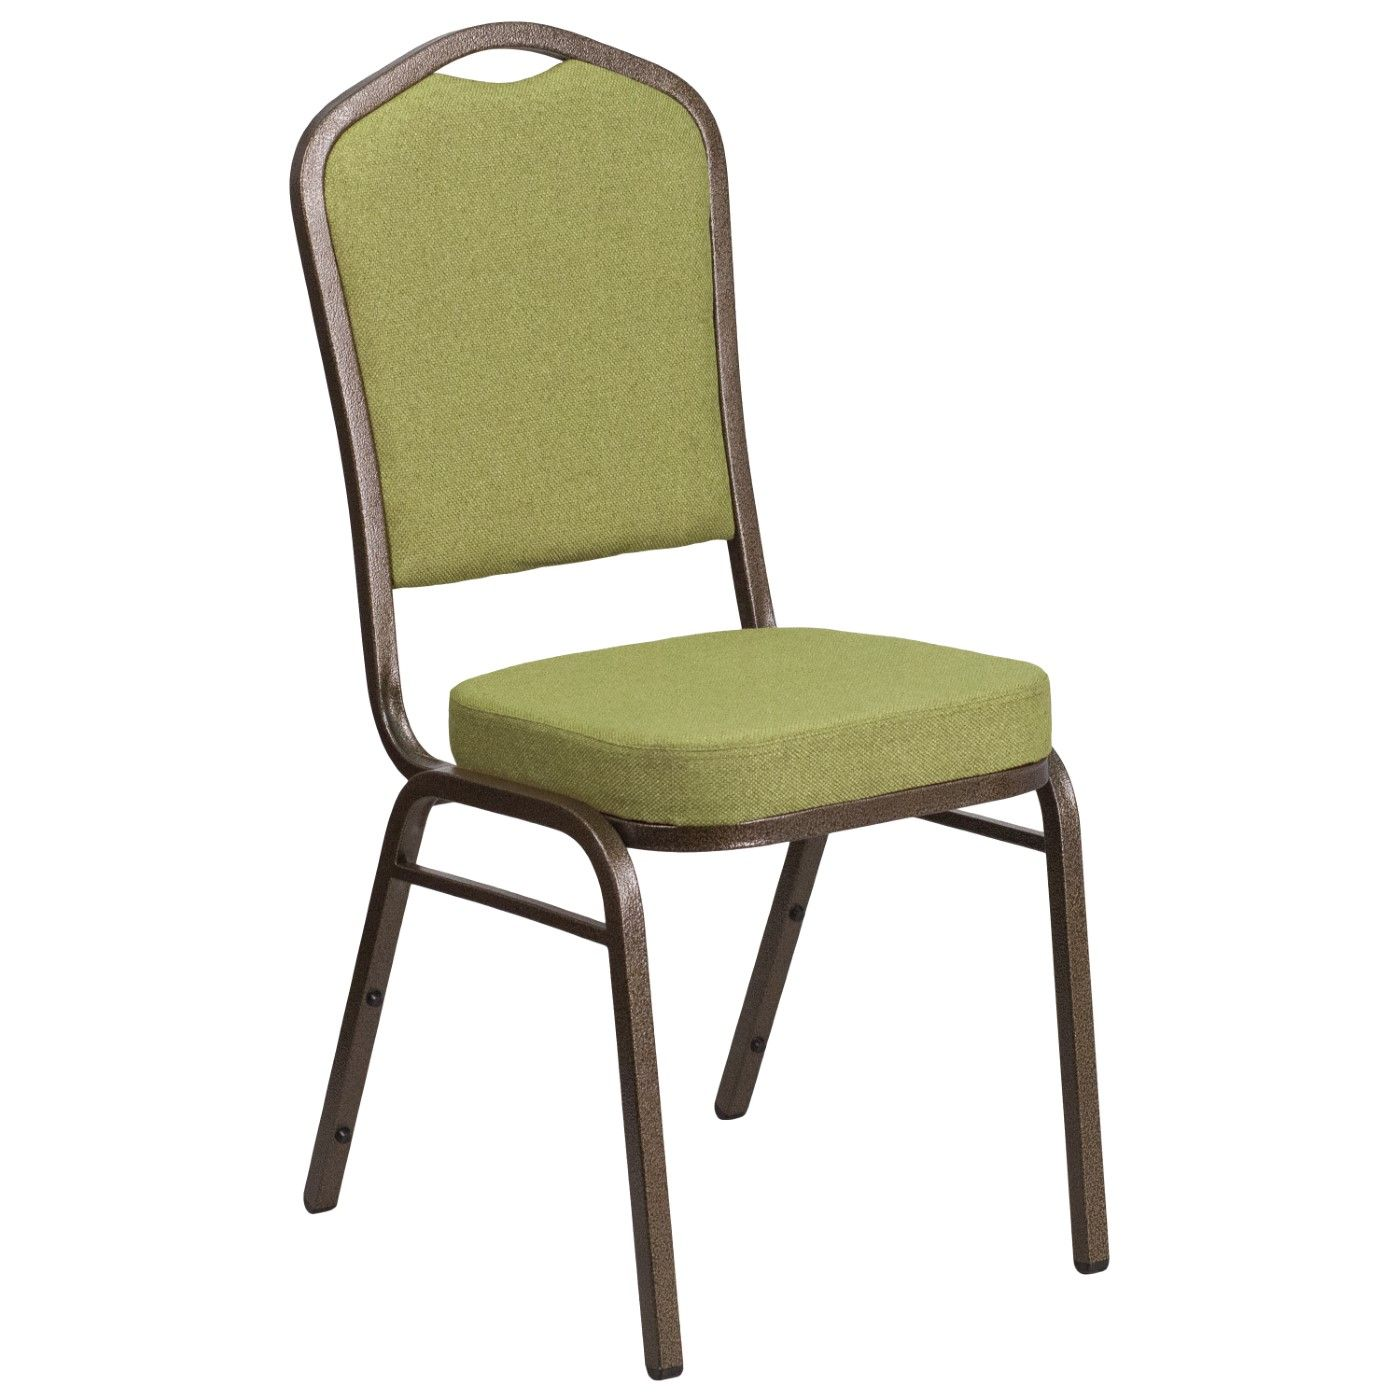 TOUGH ENOUGH Series Crown Back Stacking Banquet Chair in Moss Fabric - Gold Vein Frame